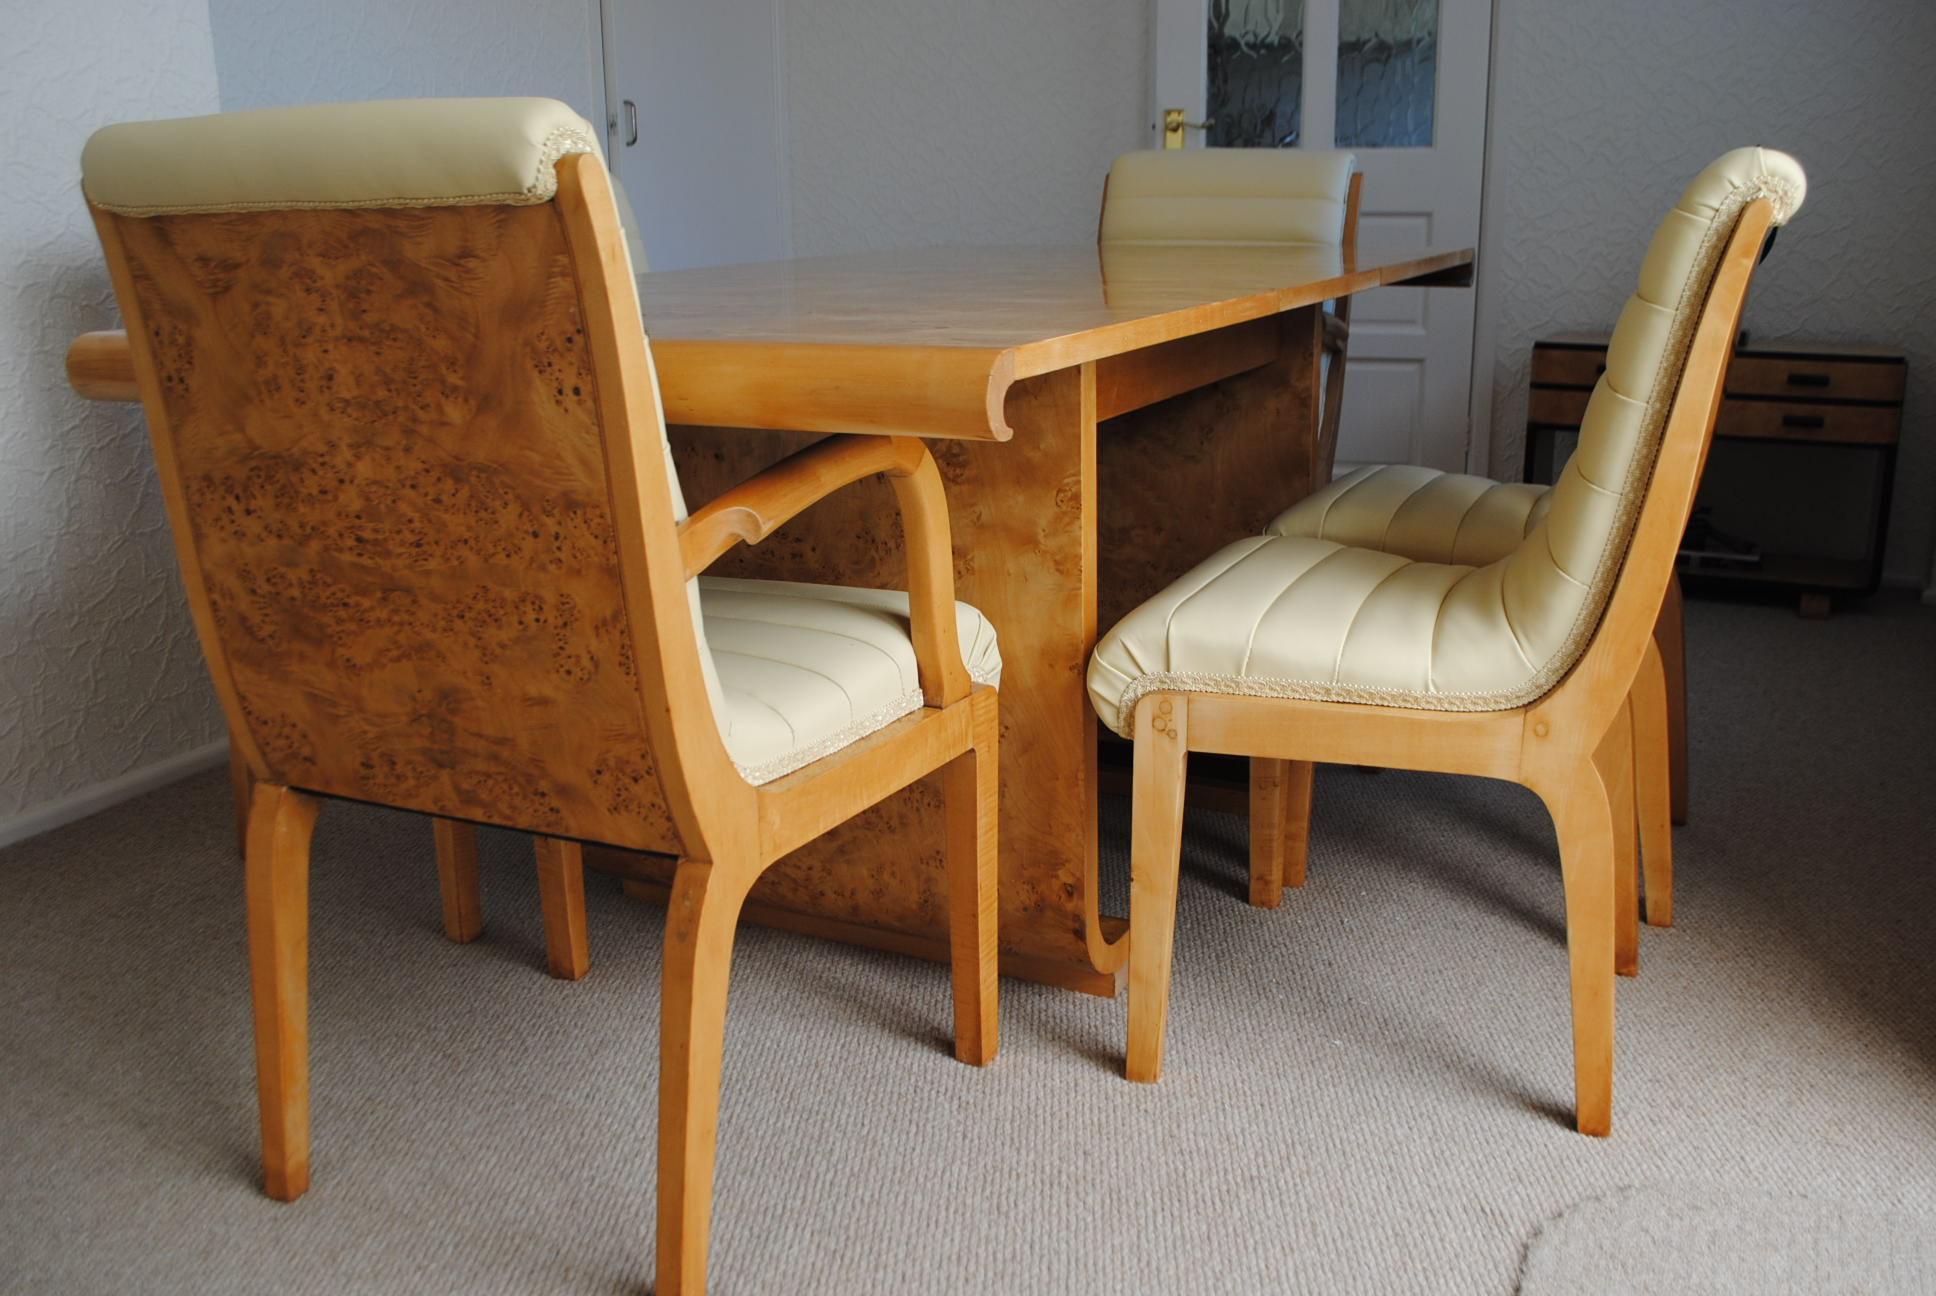 art deco era furniture. Art Deco Dining Table And 6 Chairs Era Furniture